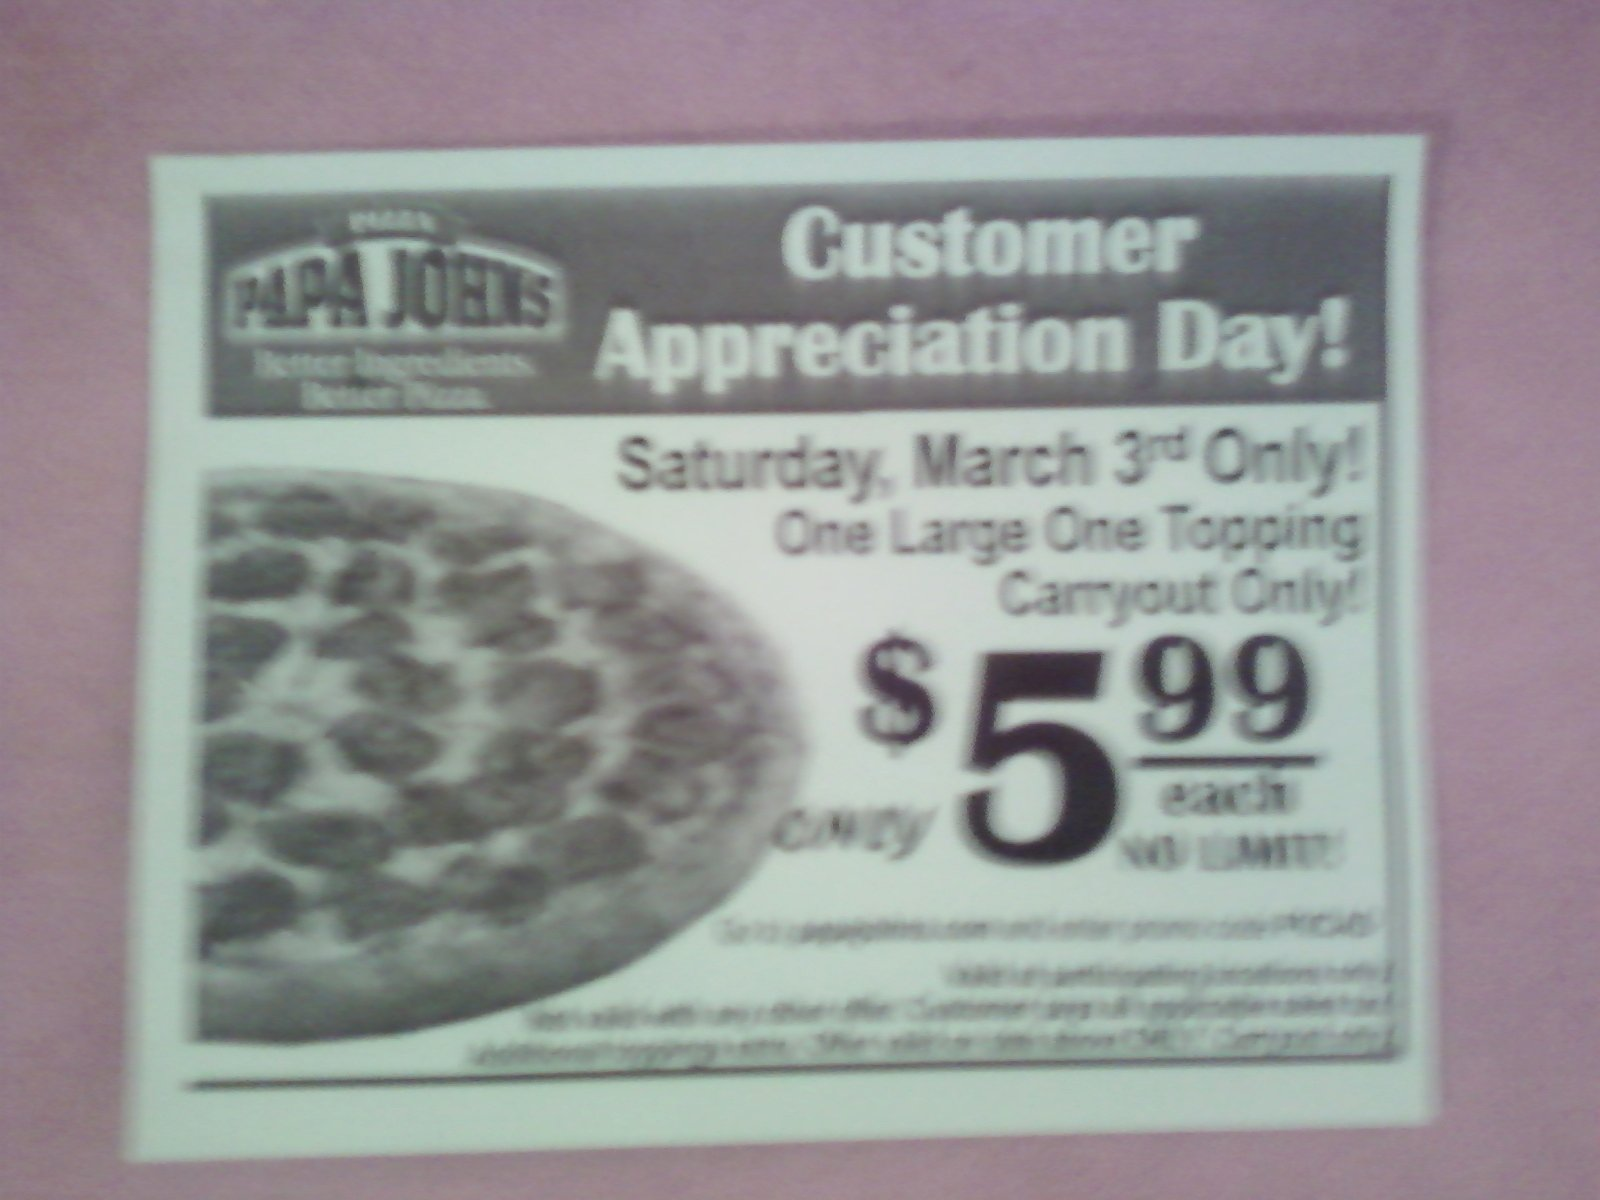 Customer Appreciation Day Flyer Template Best Of Arizona Families Papa John S Cusromer Appreciation Day 3